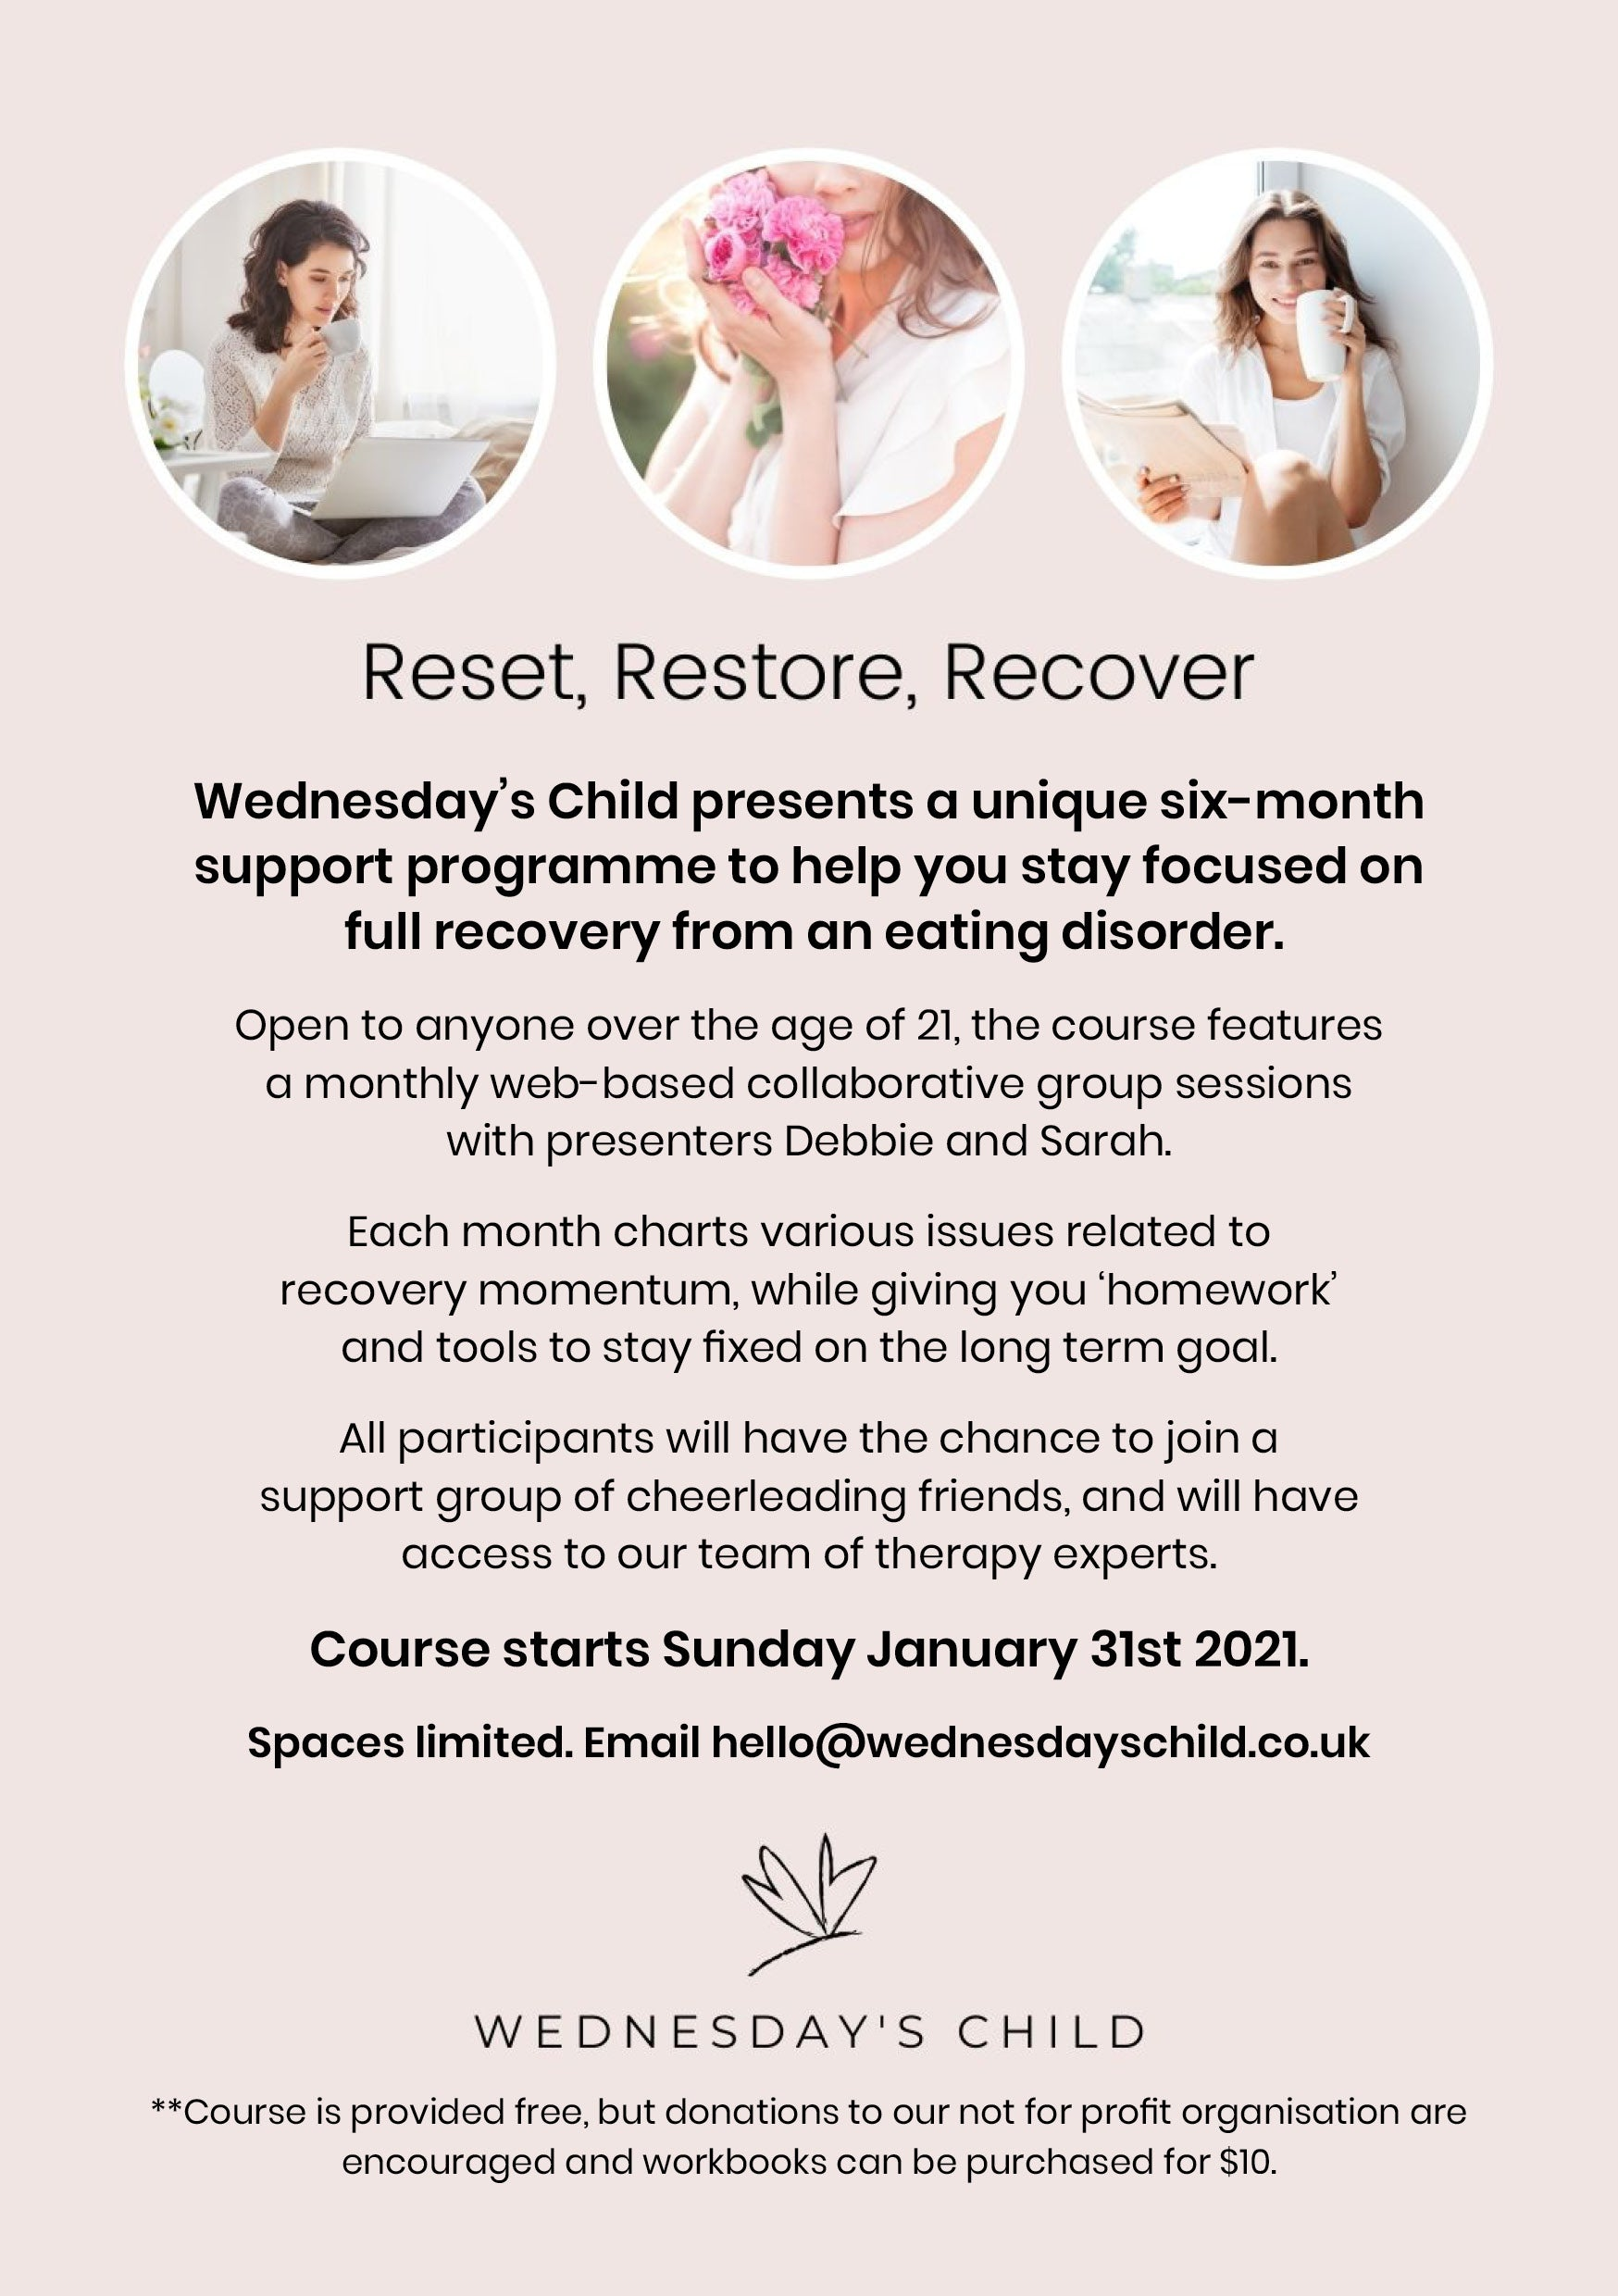 Rest, Restore, Recover – Week 6 Online - 27th June